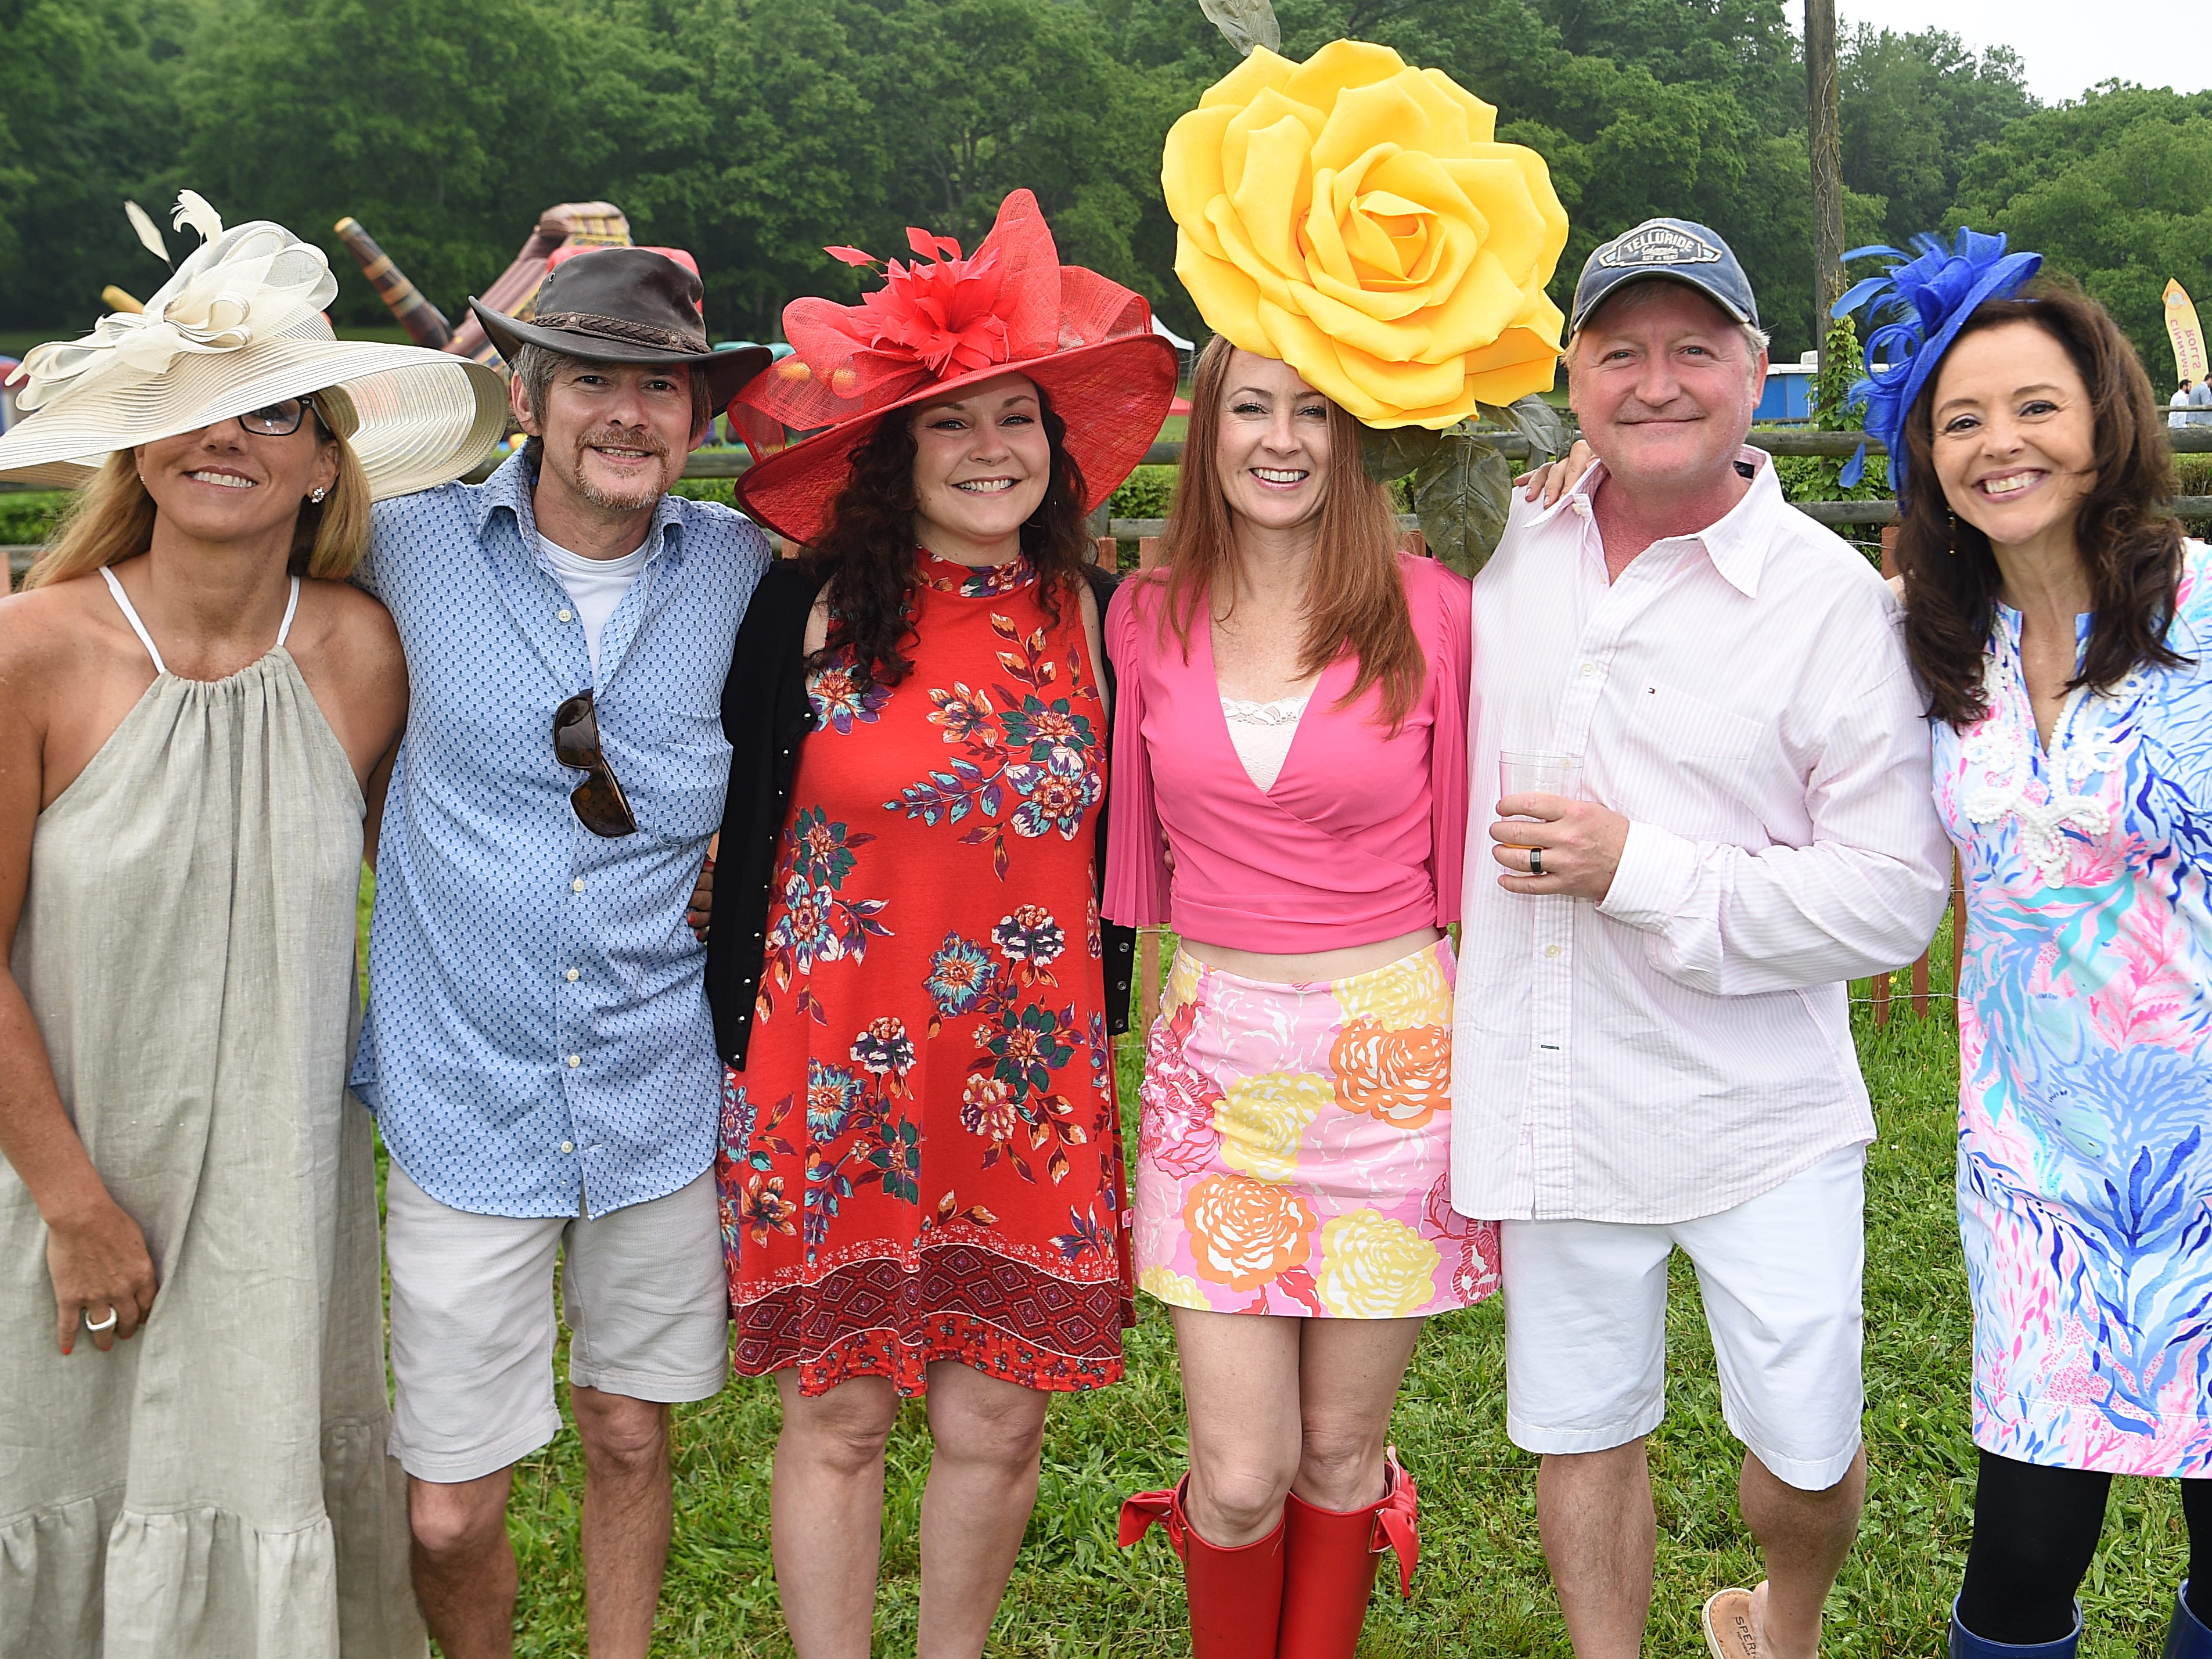 Penny M Crain, Ron Morales, Nickie Greer, Jill Adkins, Felix Simmons, and Leah Totty at the 78th Iroquois Steeplechase at Percy Warner Park in Nashville on Saturday, May 11, 2019.